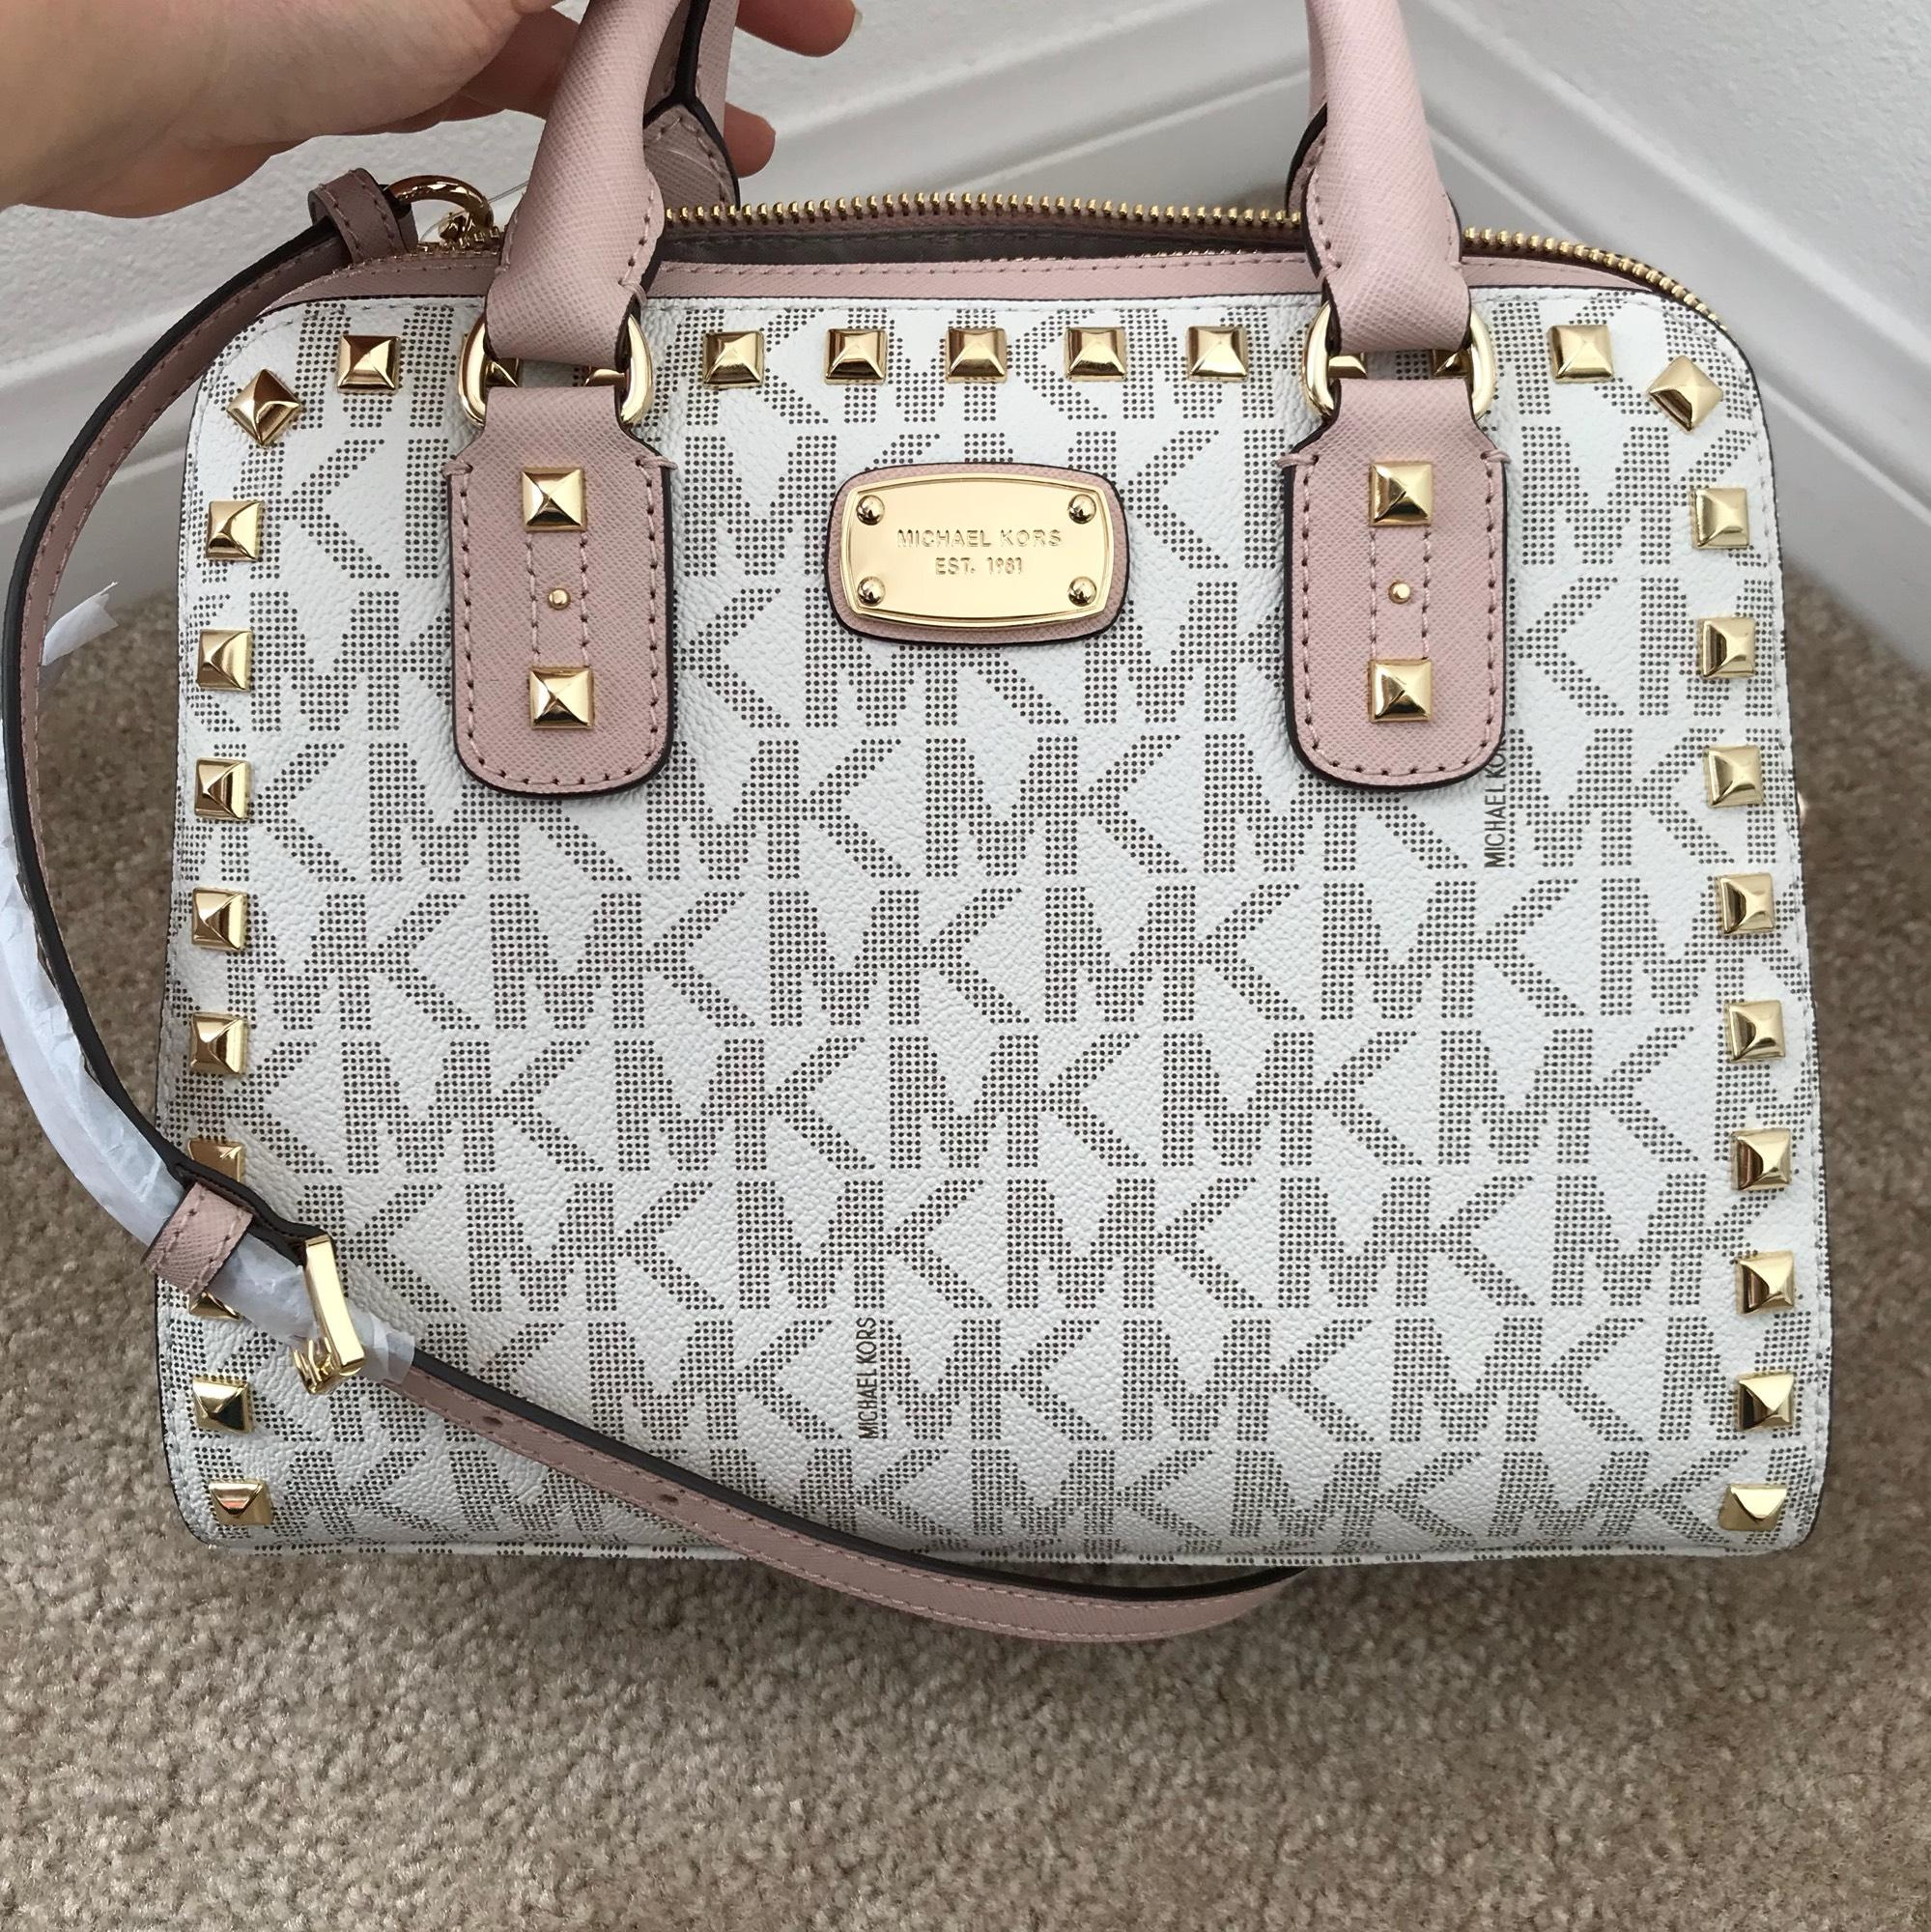 d75c90c5927f ... cheap michael kors sandrine stud small vanilla ballet pvc leather  satchel tradesy a490c 90a81